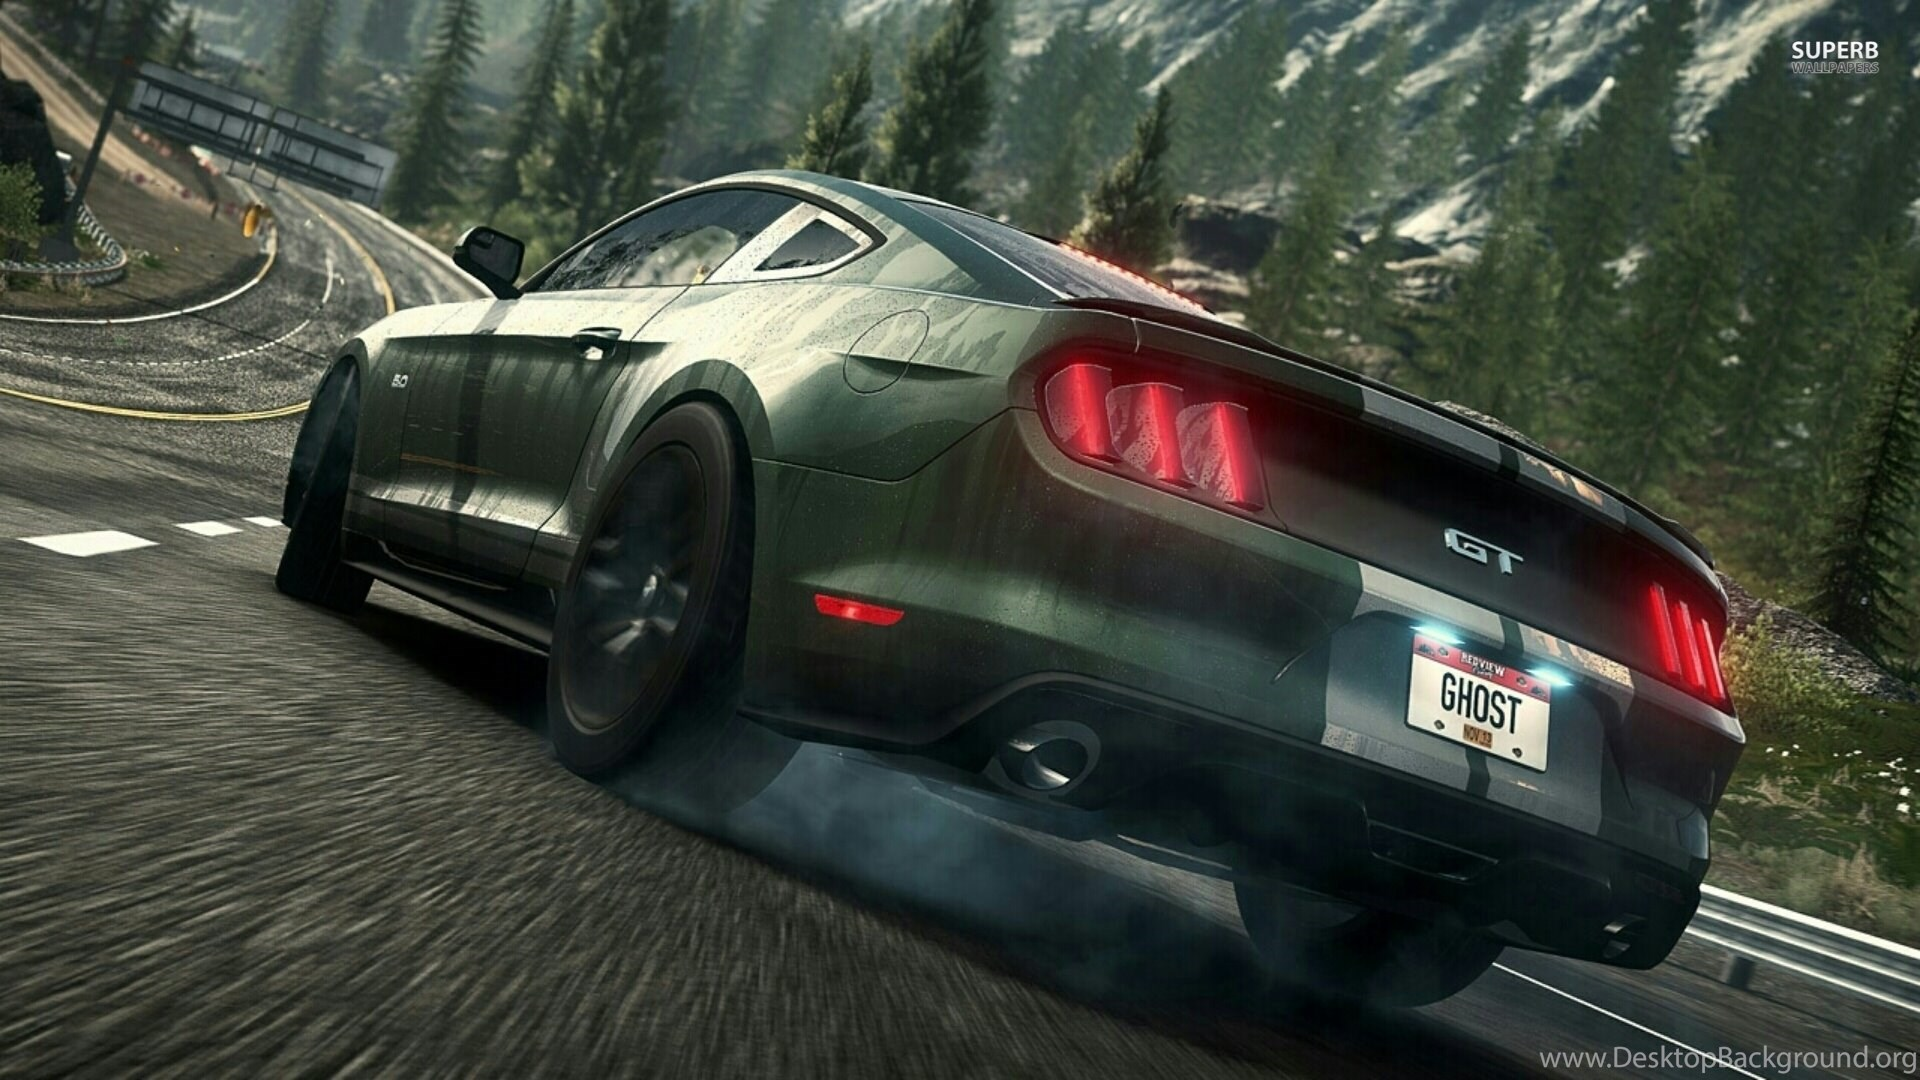 Ford Mustang Gt Need For Speed Wallpapers Movie Ford Mustang